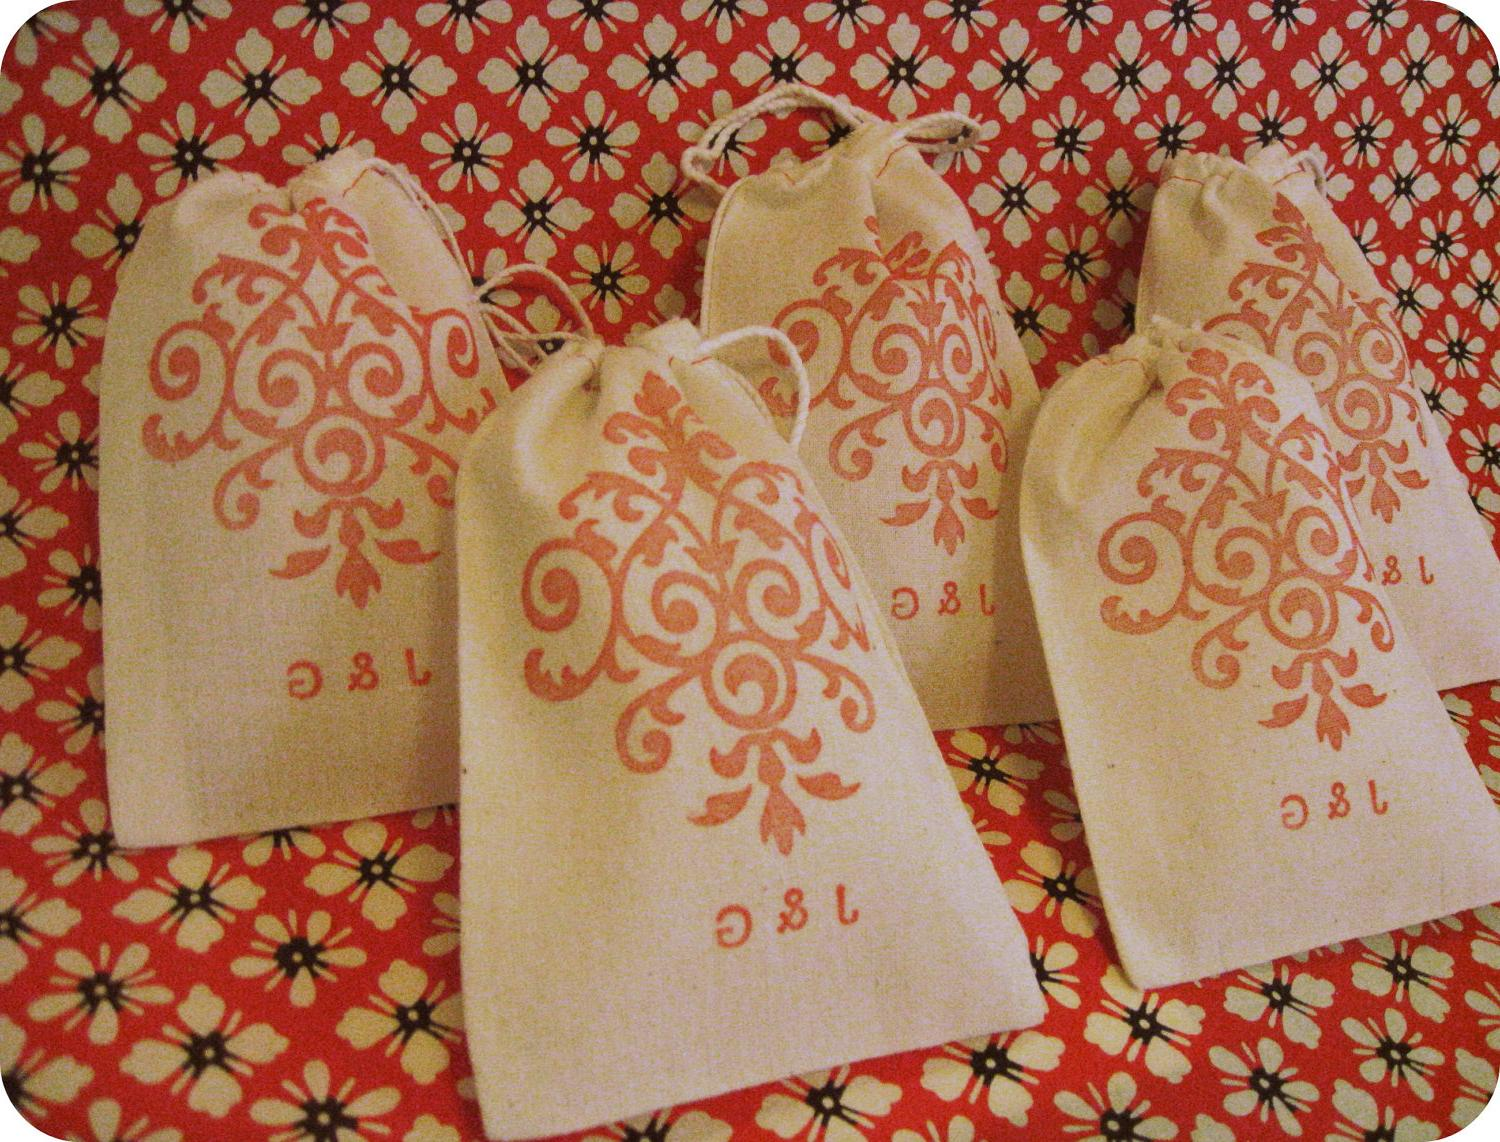 Wedding Favors - 4 x 6 Drawstring Bags